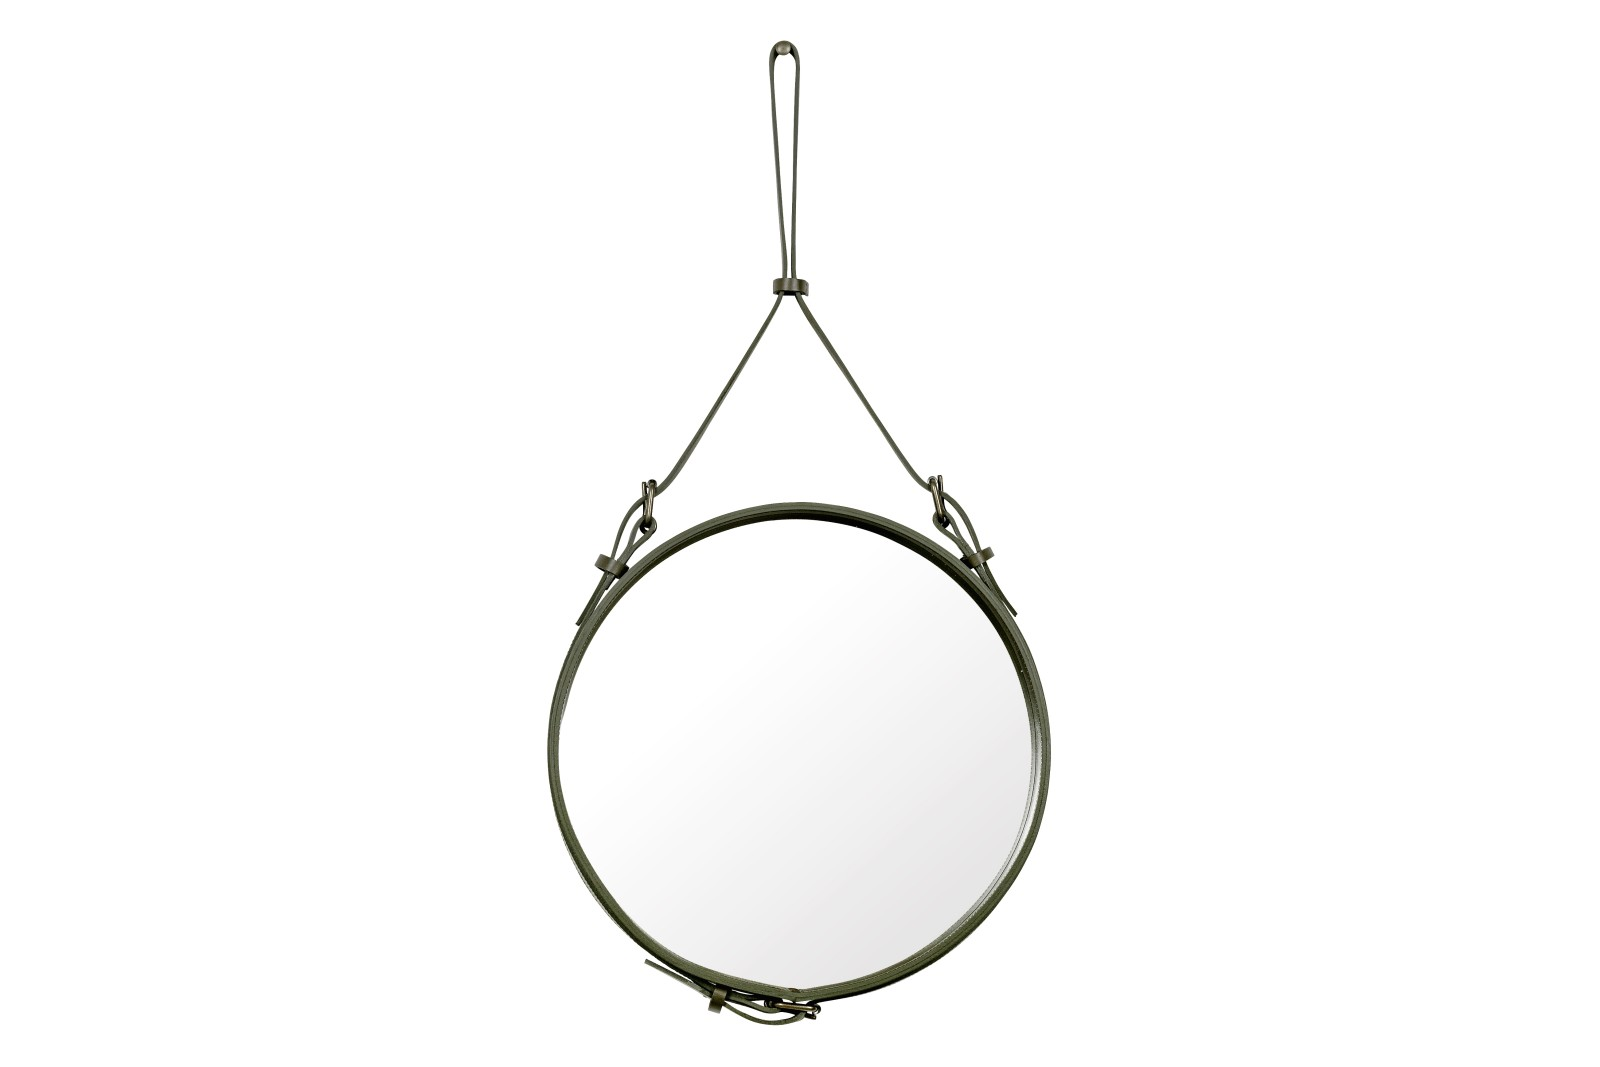 Adnet Circular Mirror Gubi Leather Olive, Small